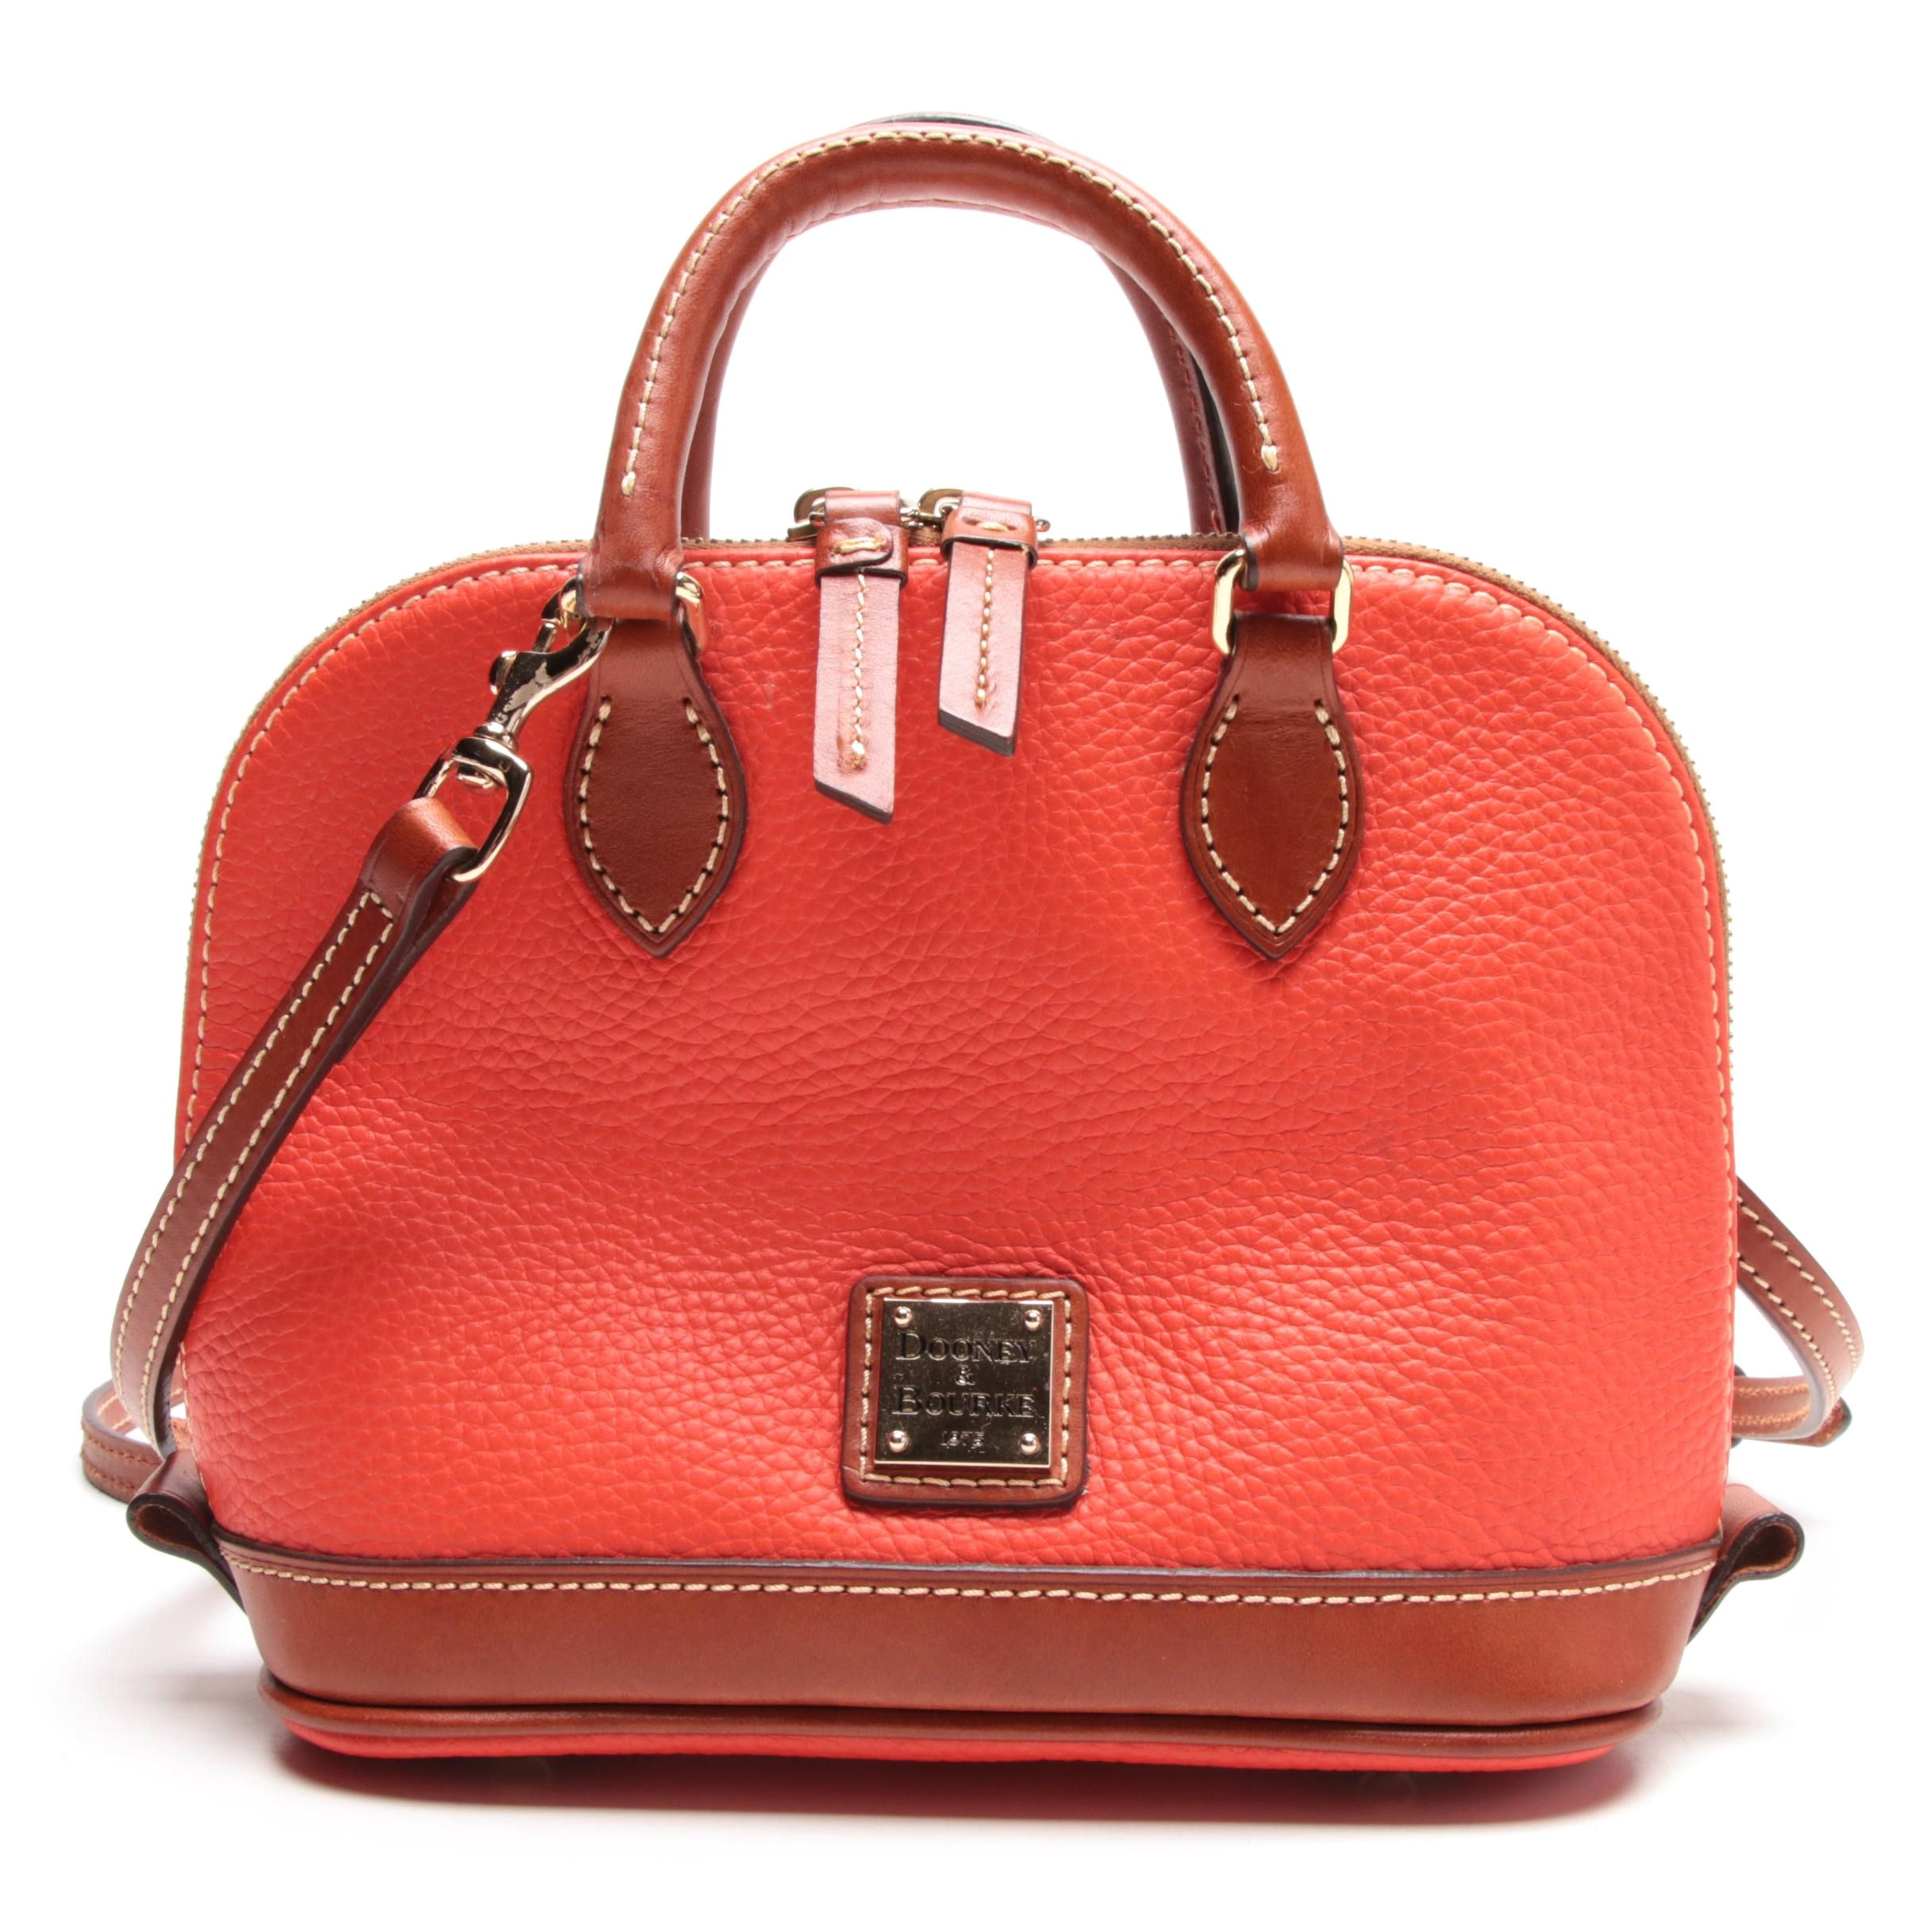 Dooney & Bourke Orange Pebbled Grain Leather Bitsy Bag Trimmed in Brown Leather